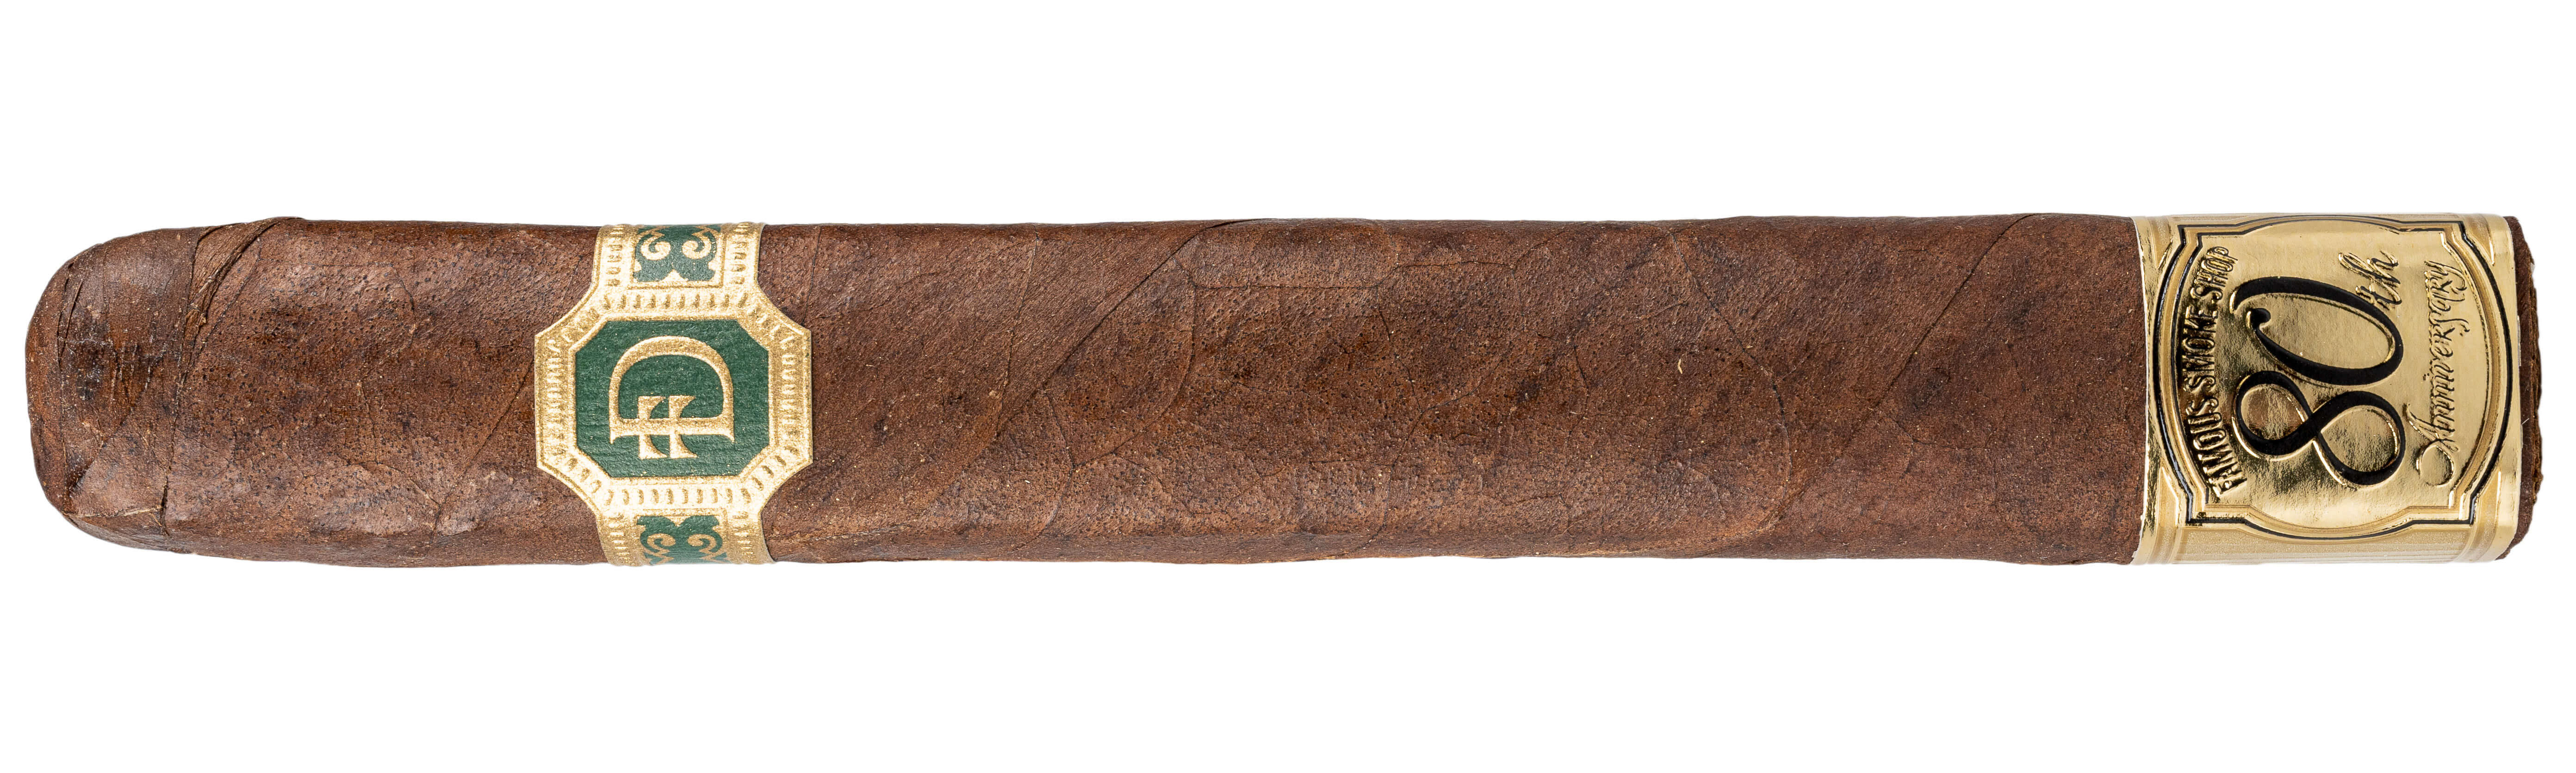 Blind Cigar Review: Dunbarton T&T | Famous Smoke Shop 80th Anniversary